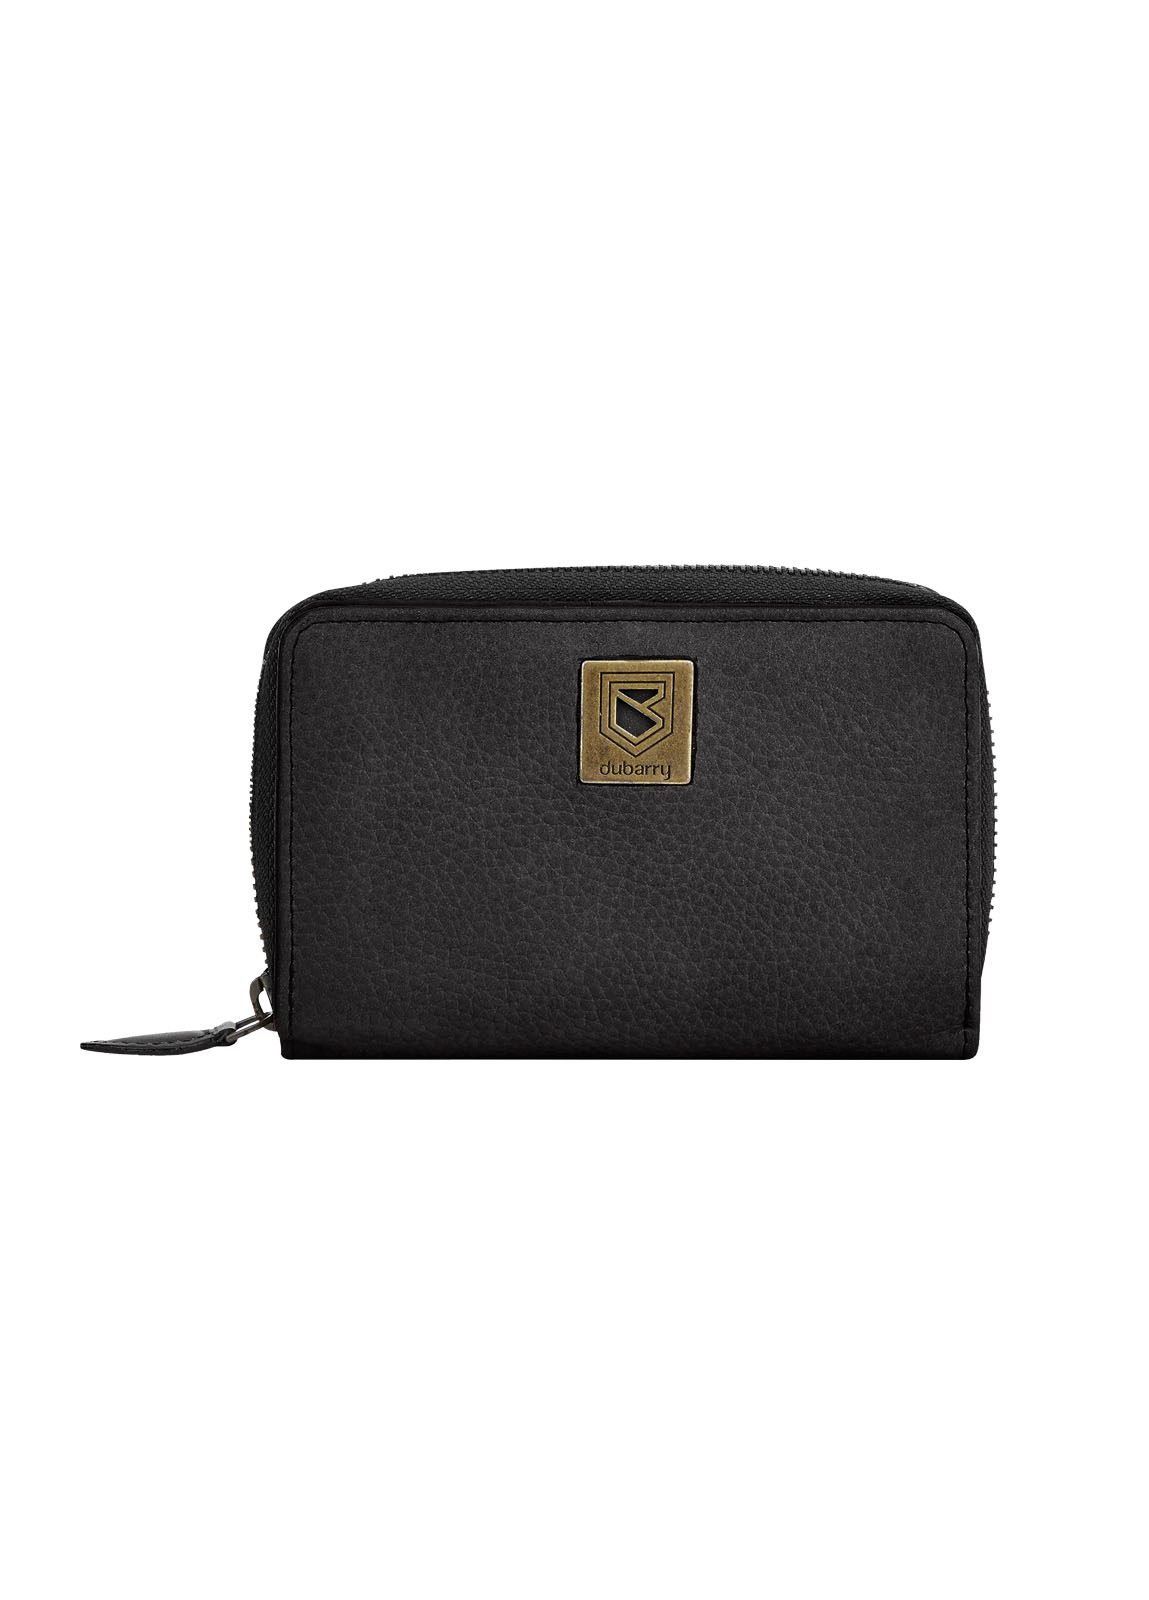 Enniskerry_Leather_Wallet_Black_1